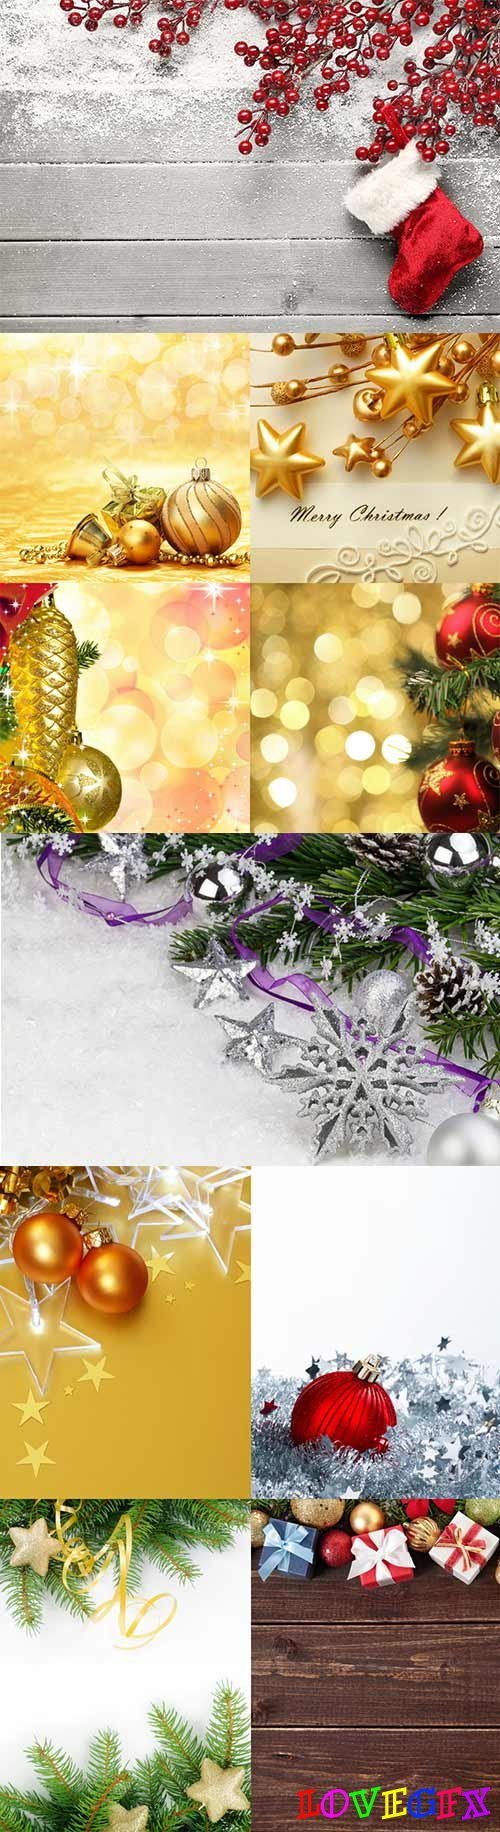 Christmas bitmap backgrounds 5